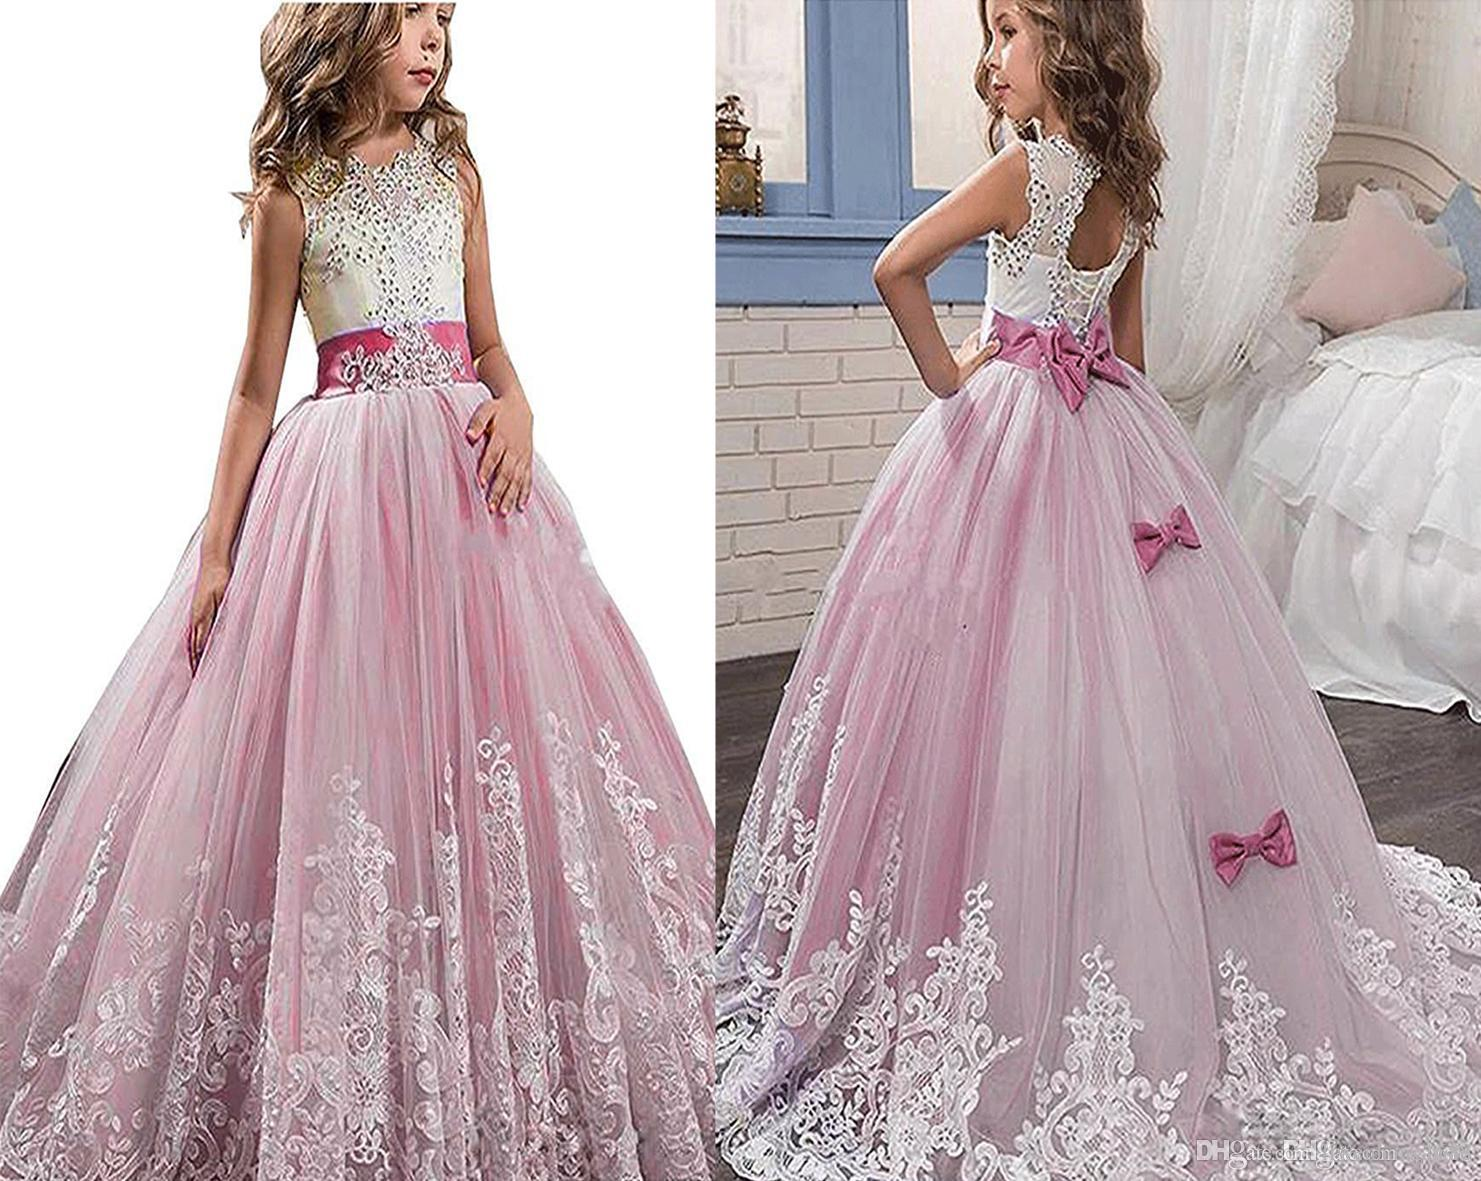 Kauste Ball Gown Dress Pink Lace Tullle Dress Aline Flower Girl Dress For First Communion Party For Wedding For Birthday Party